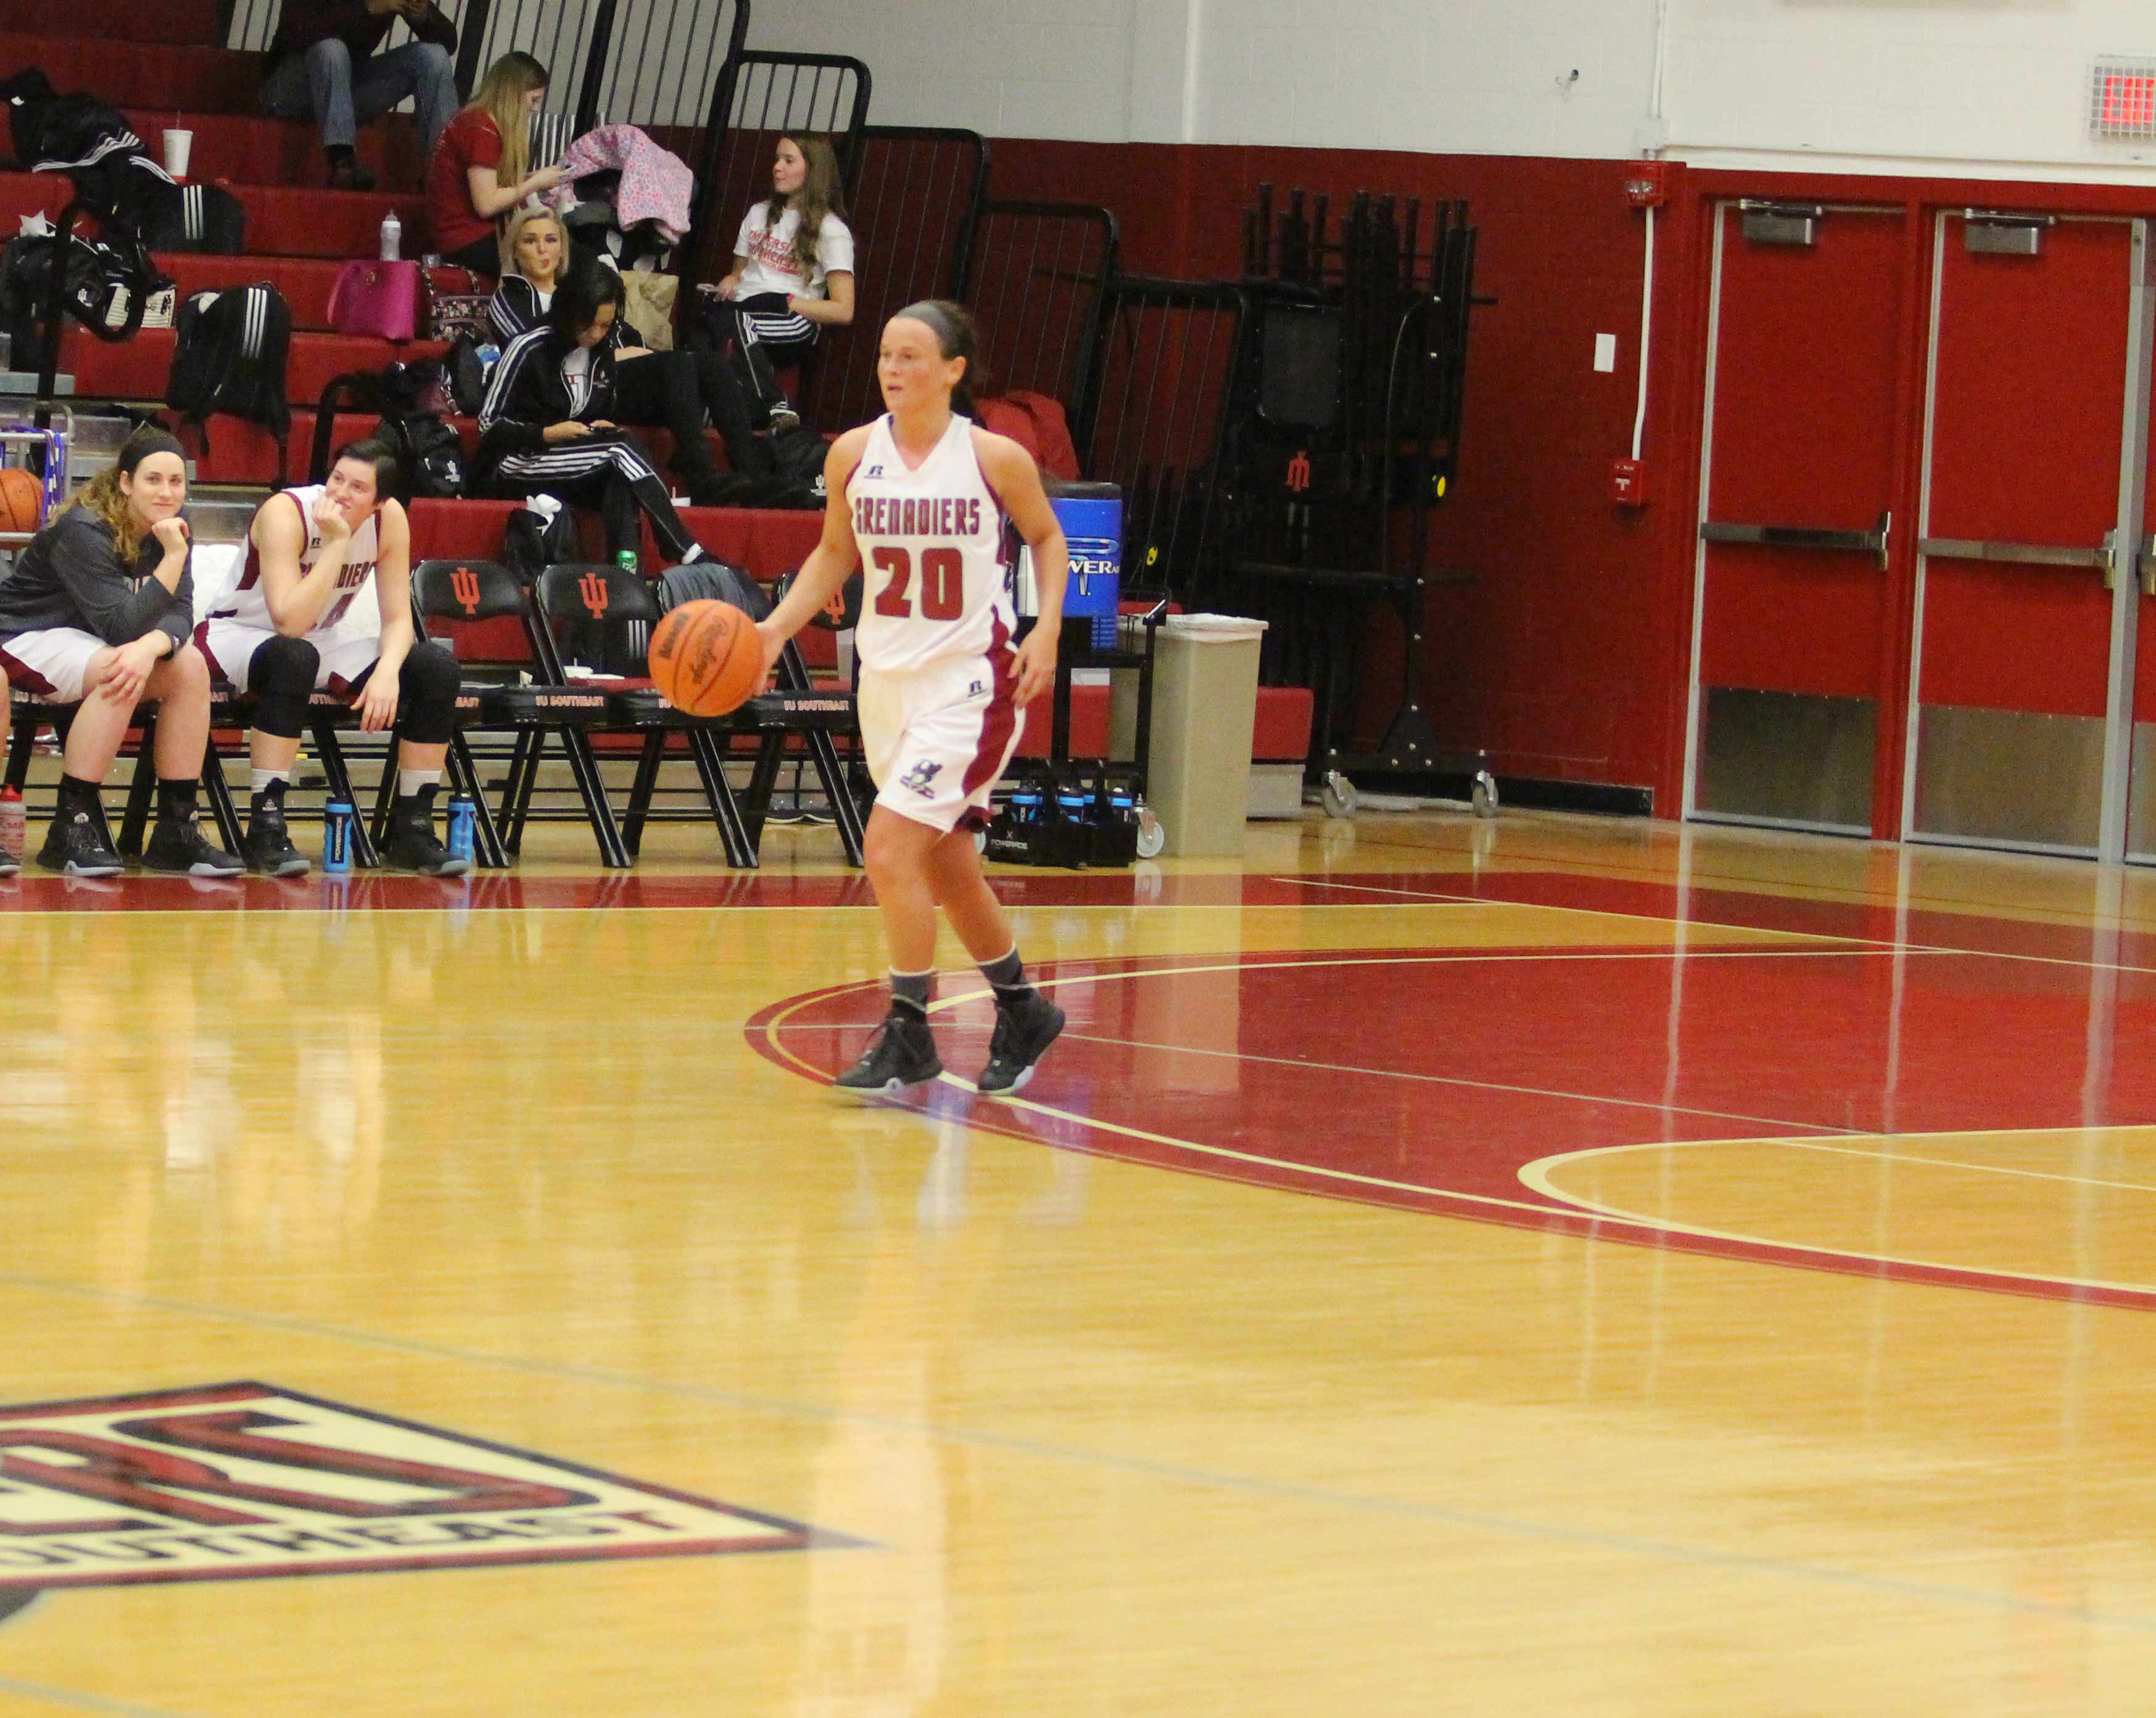 Sophomore guard Annie Thomas bring the ball up the court. The Grenadiers would go on the win by the score of 78-55.